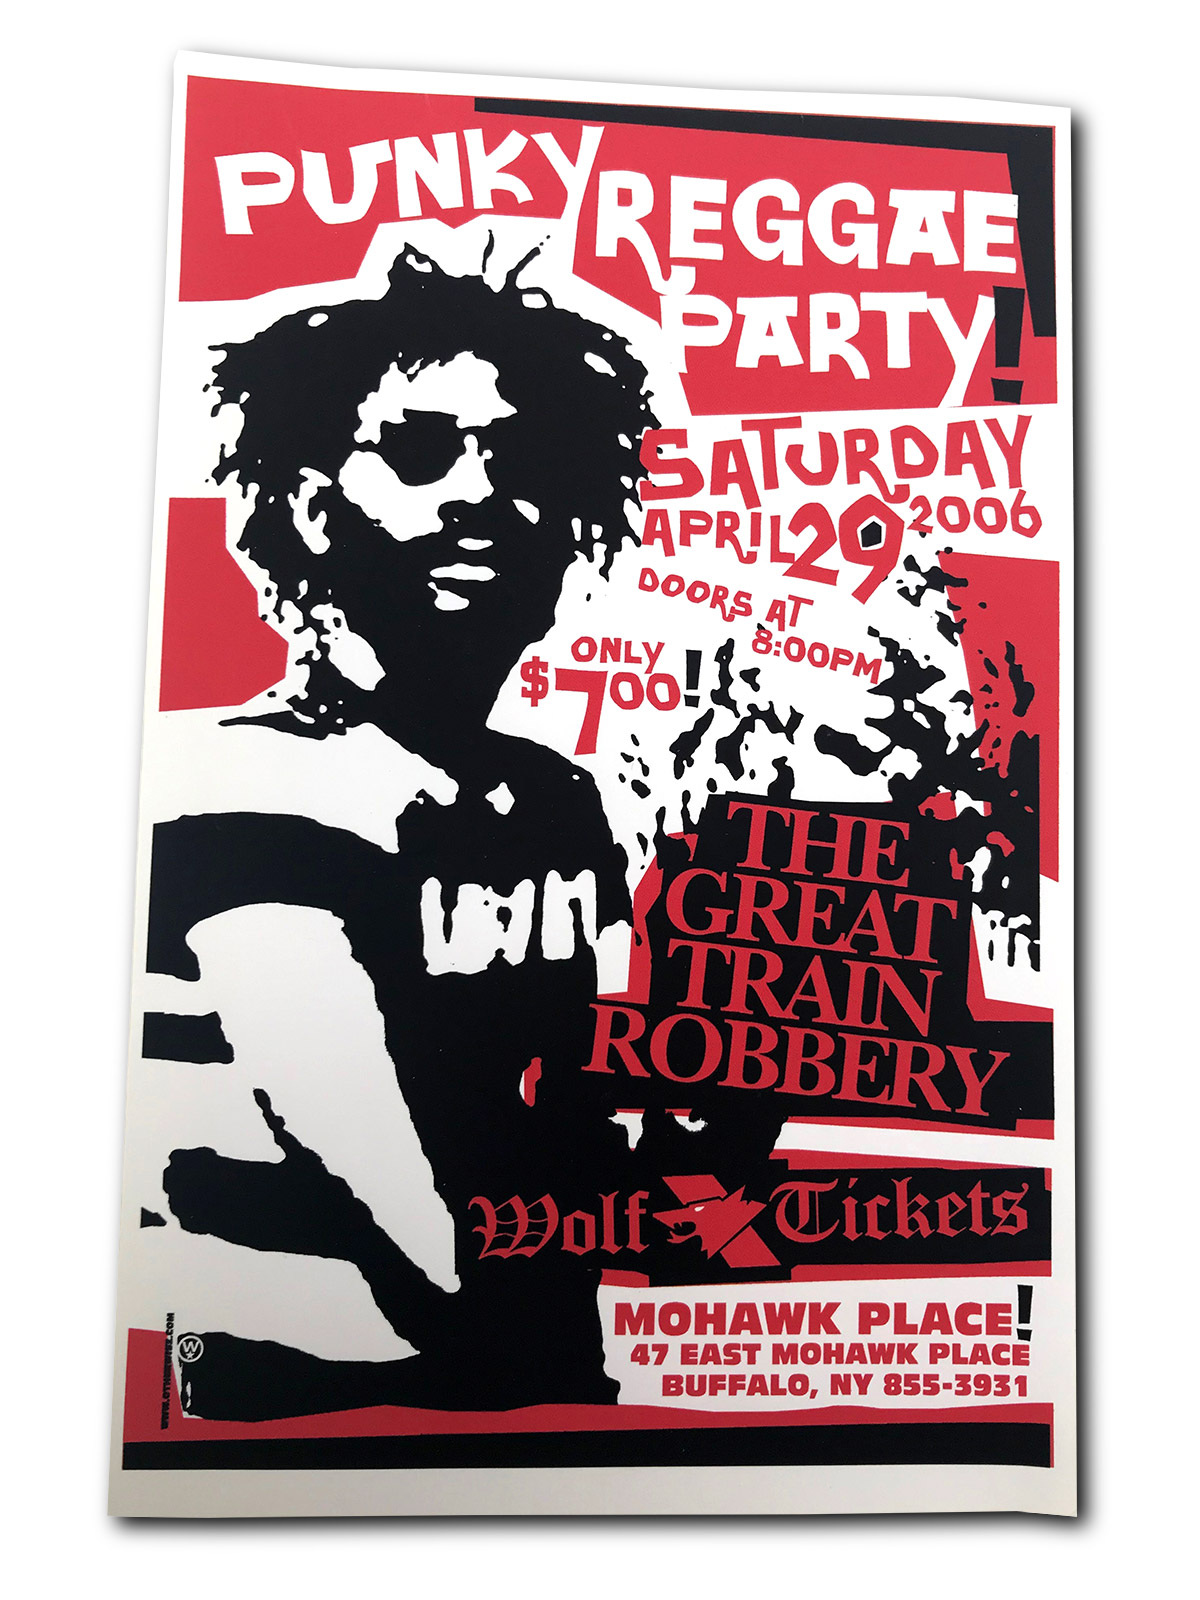 Pinky Reggae party, work tickets, the great train robbery, mohawk place, buffalo ny, poster design, mark wisz